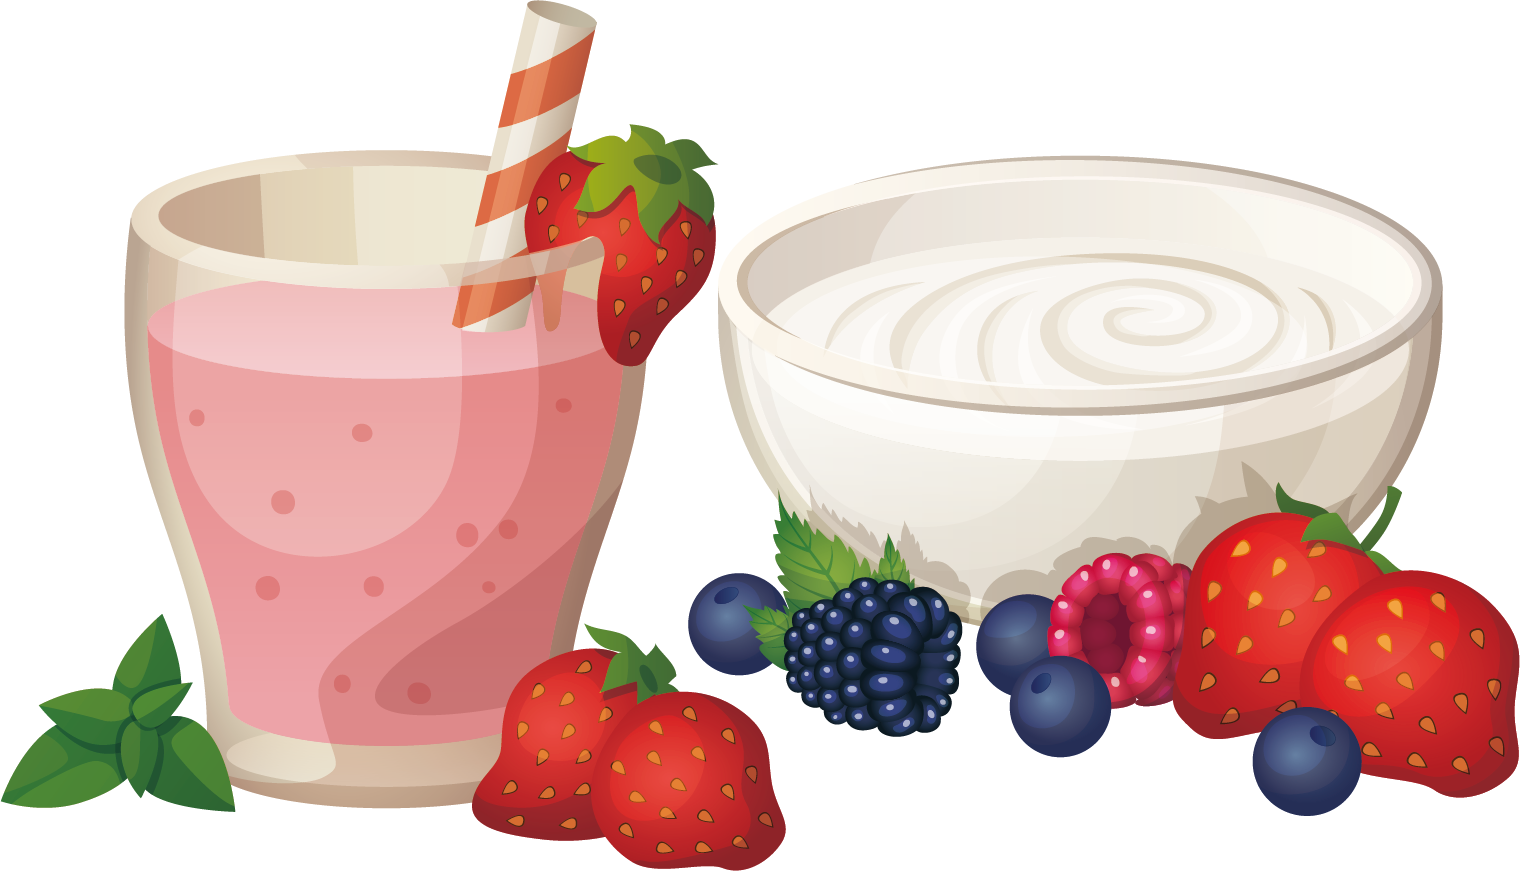 Milkshake royalty free clip. Yogurt clipart yogurt drink